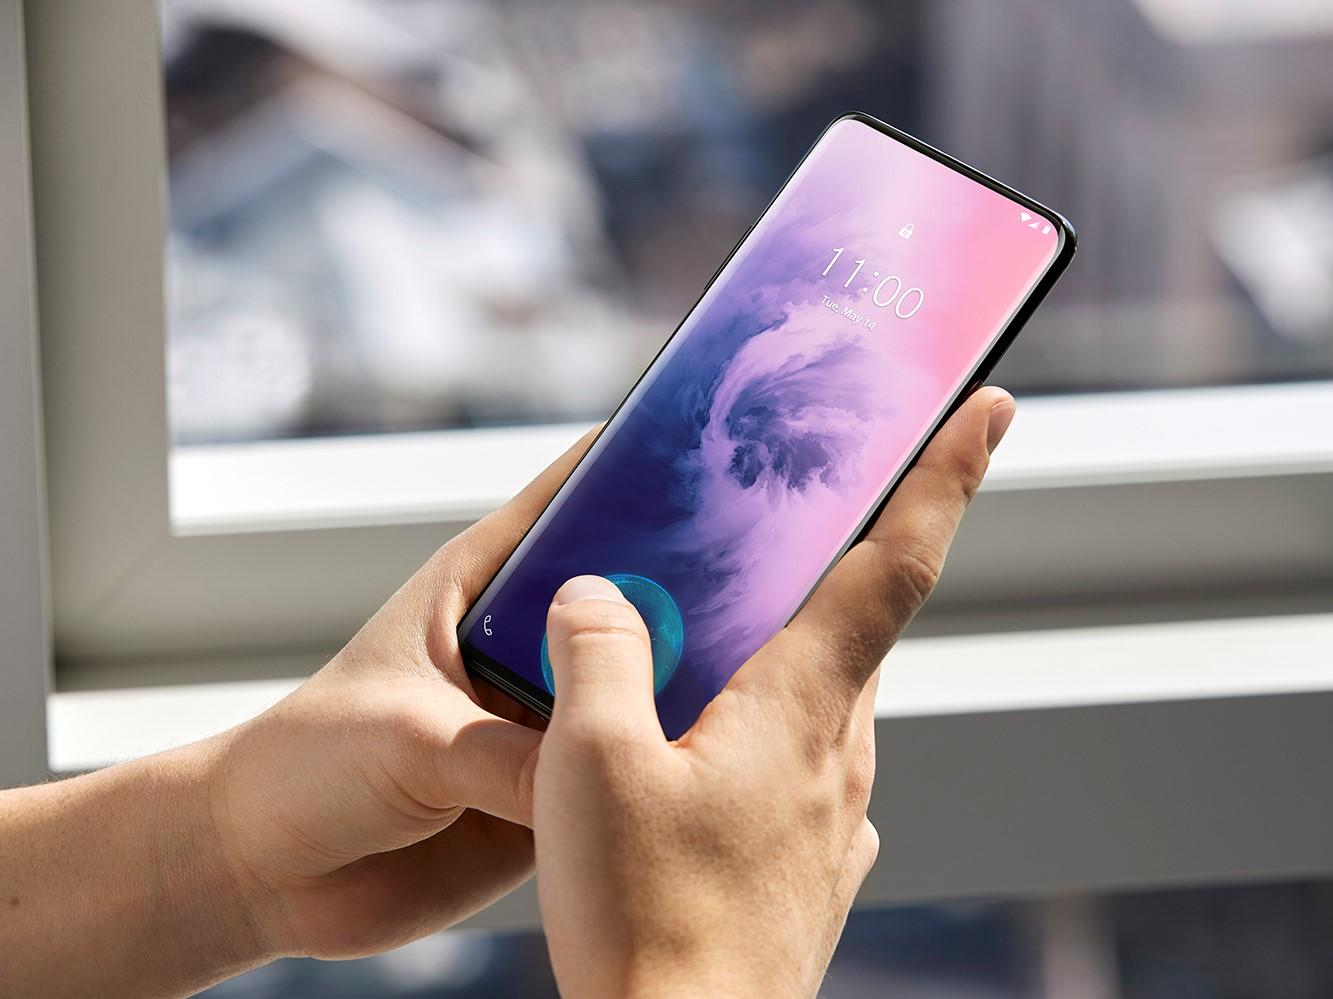 OnePlus 7 Pro: iPhone Rival Ditches the Notch to Reveal 'perfect' All-screen Phone